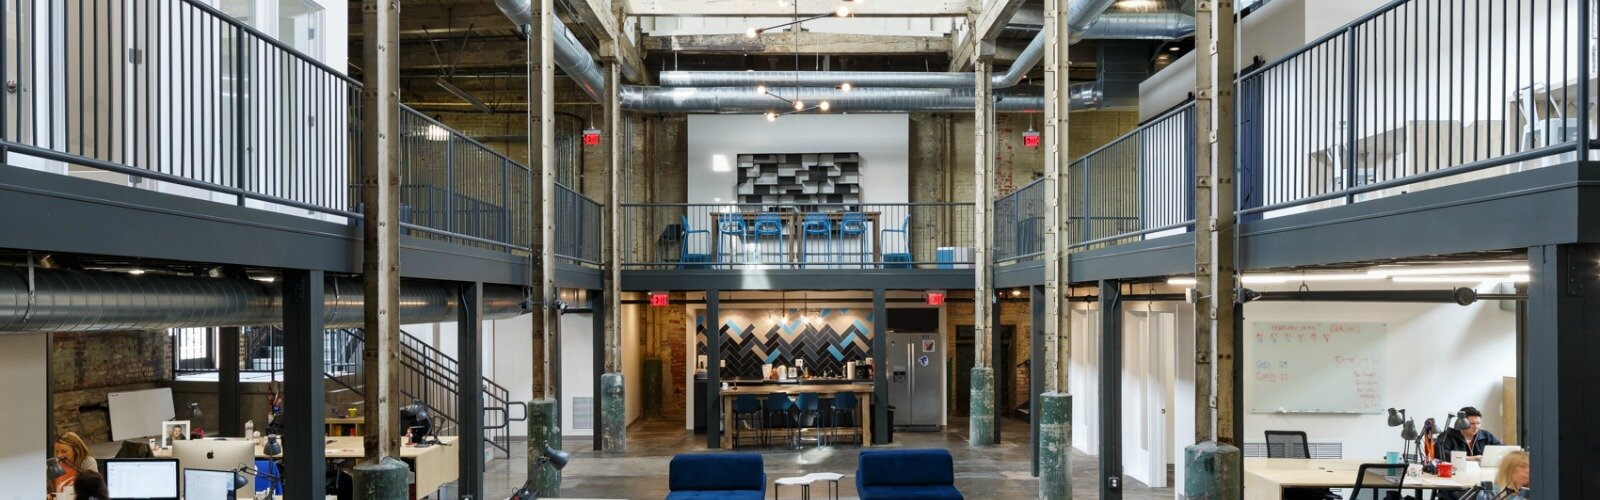 WorK SuperFanU offices demonstrate an adaptive reuse of a historic structure.